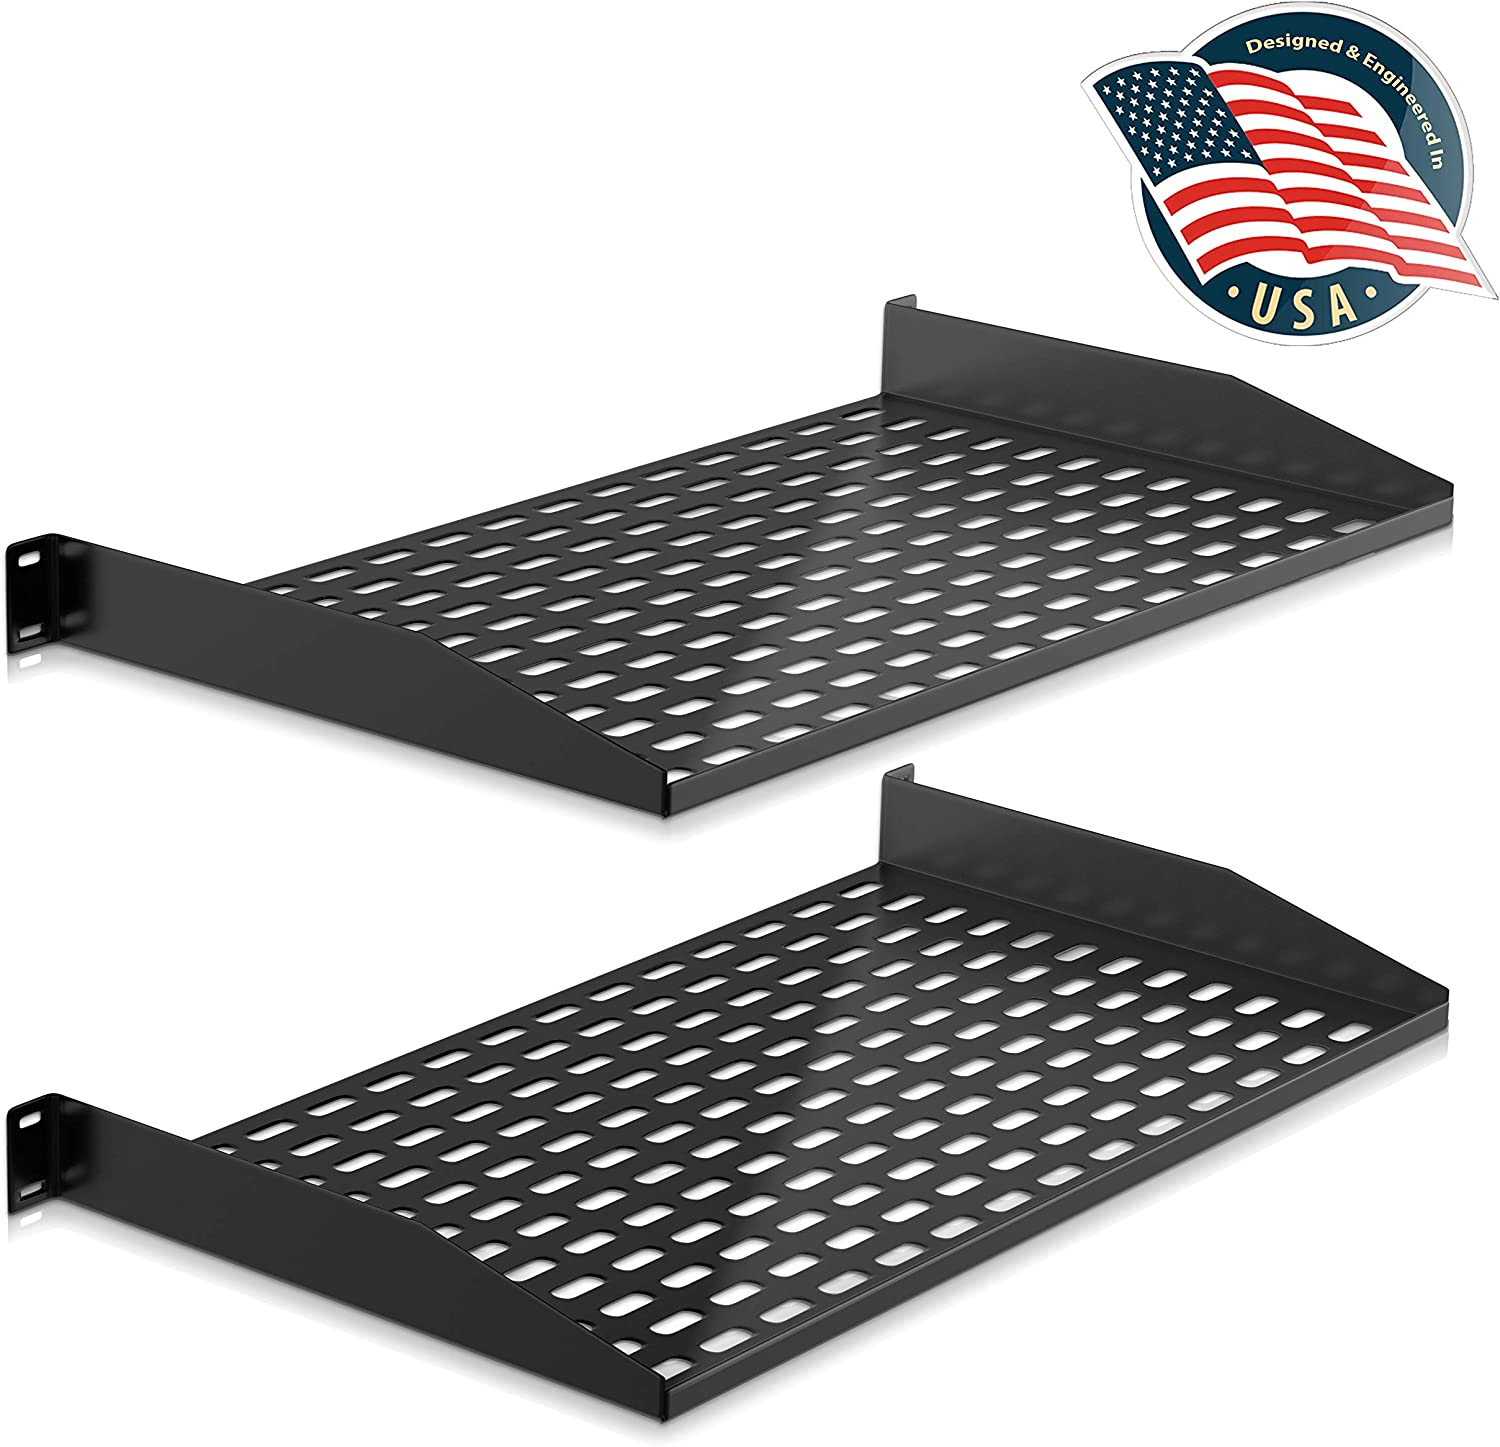 2-Pc 1U Server Rack Shelf, Vented Shelves for Good Air Circulation, Cantilever Mount, Wall Mount Rack, Universal Device, Cabinet Shelf, Computer Case Mounting Tray, Black-Pyle PLRSTN14UX2